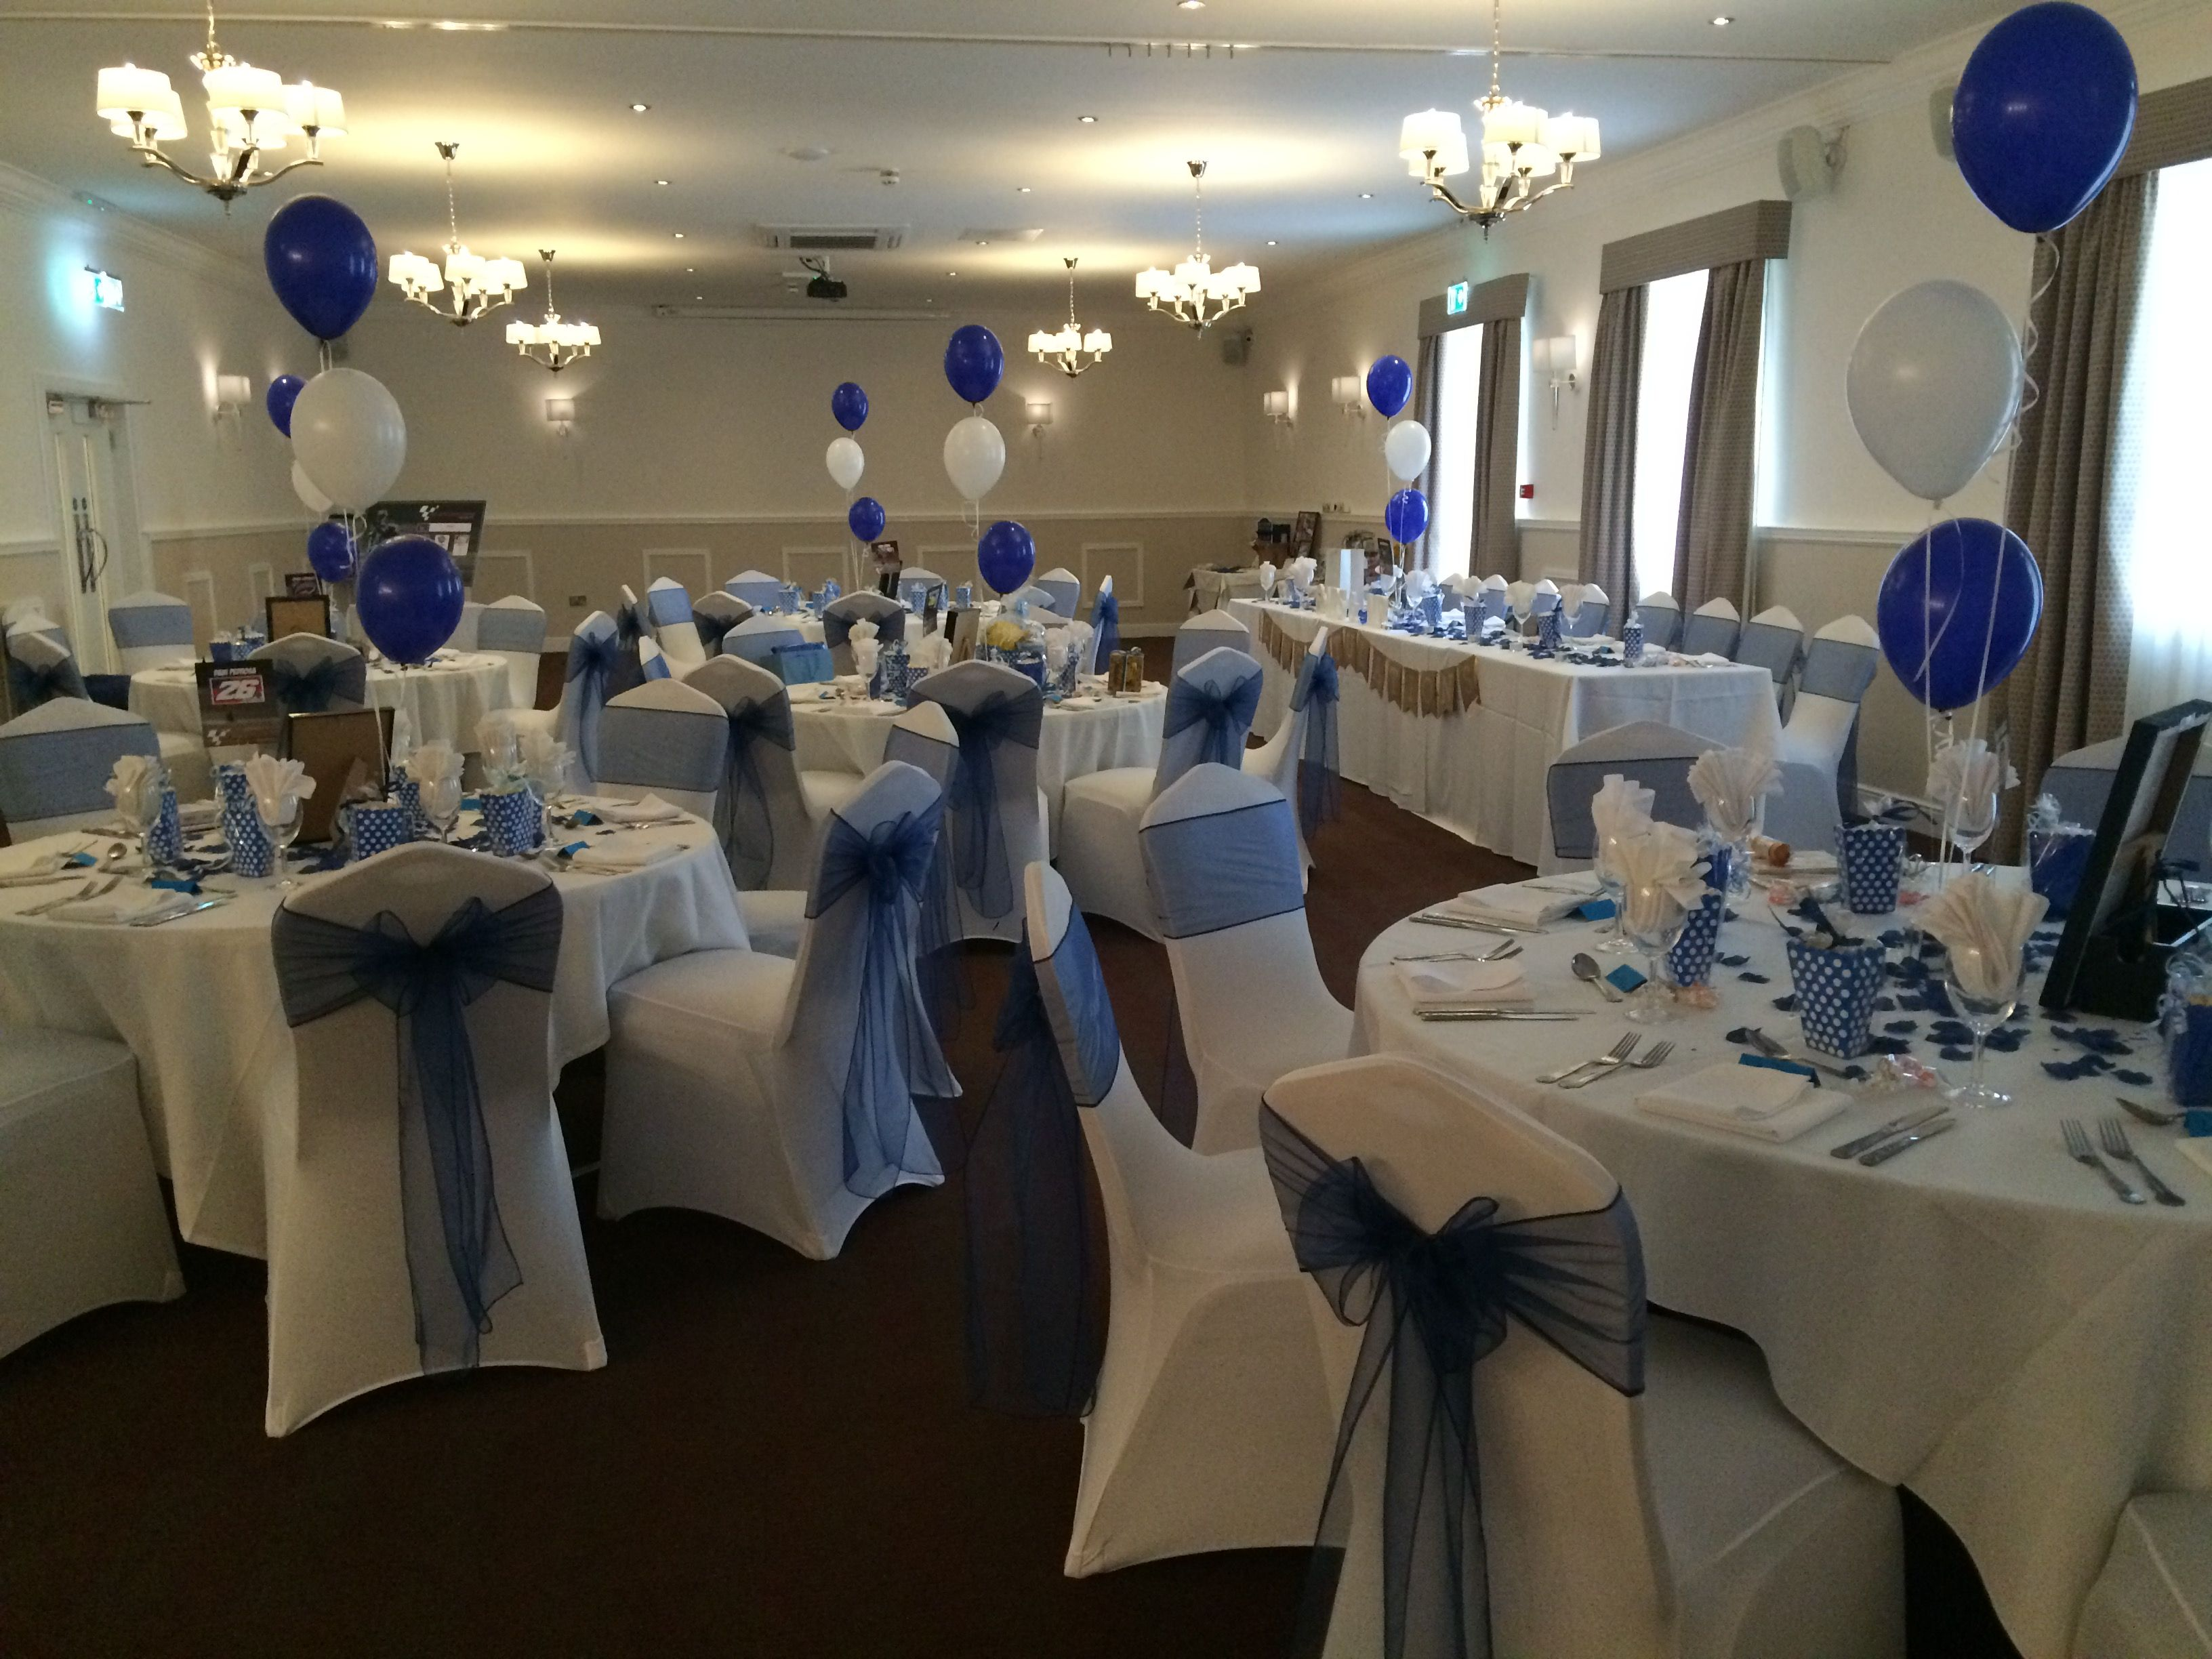 wedding chair covers swansea folding tables and chairs set white navy sashes at a reception in the grand hotel dressed